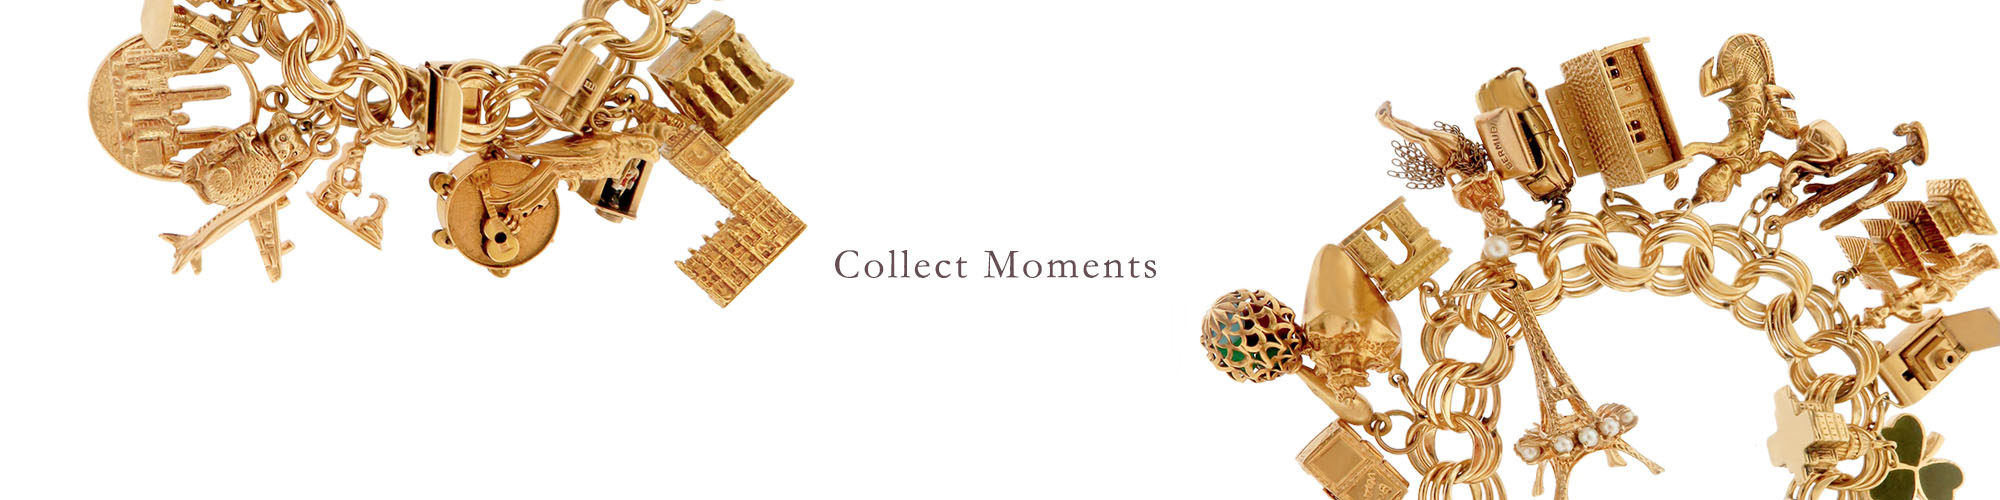 collectmomentsbanner.jpg